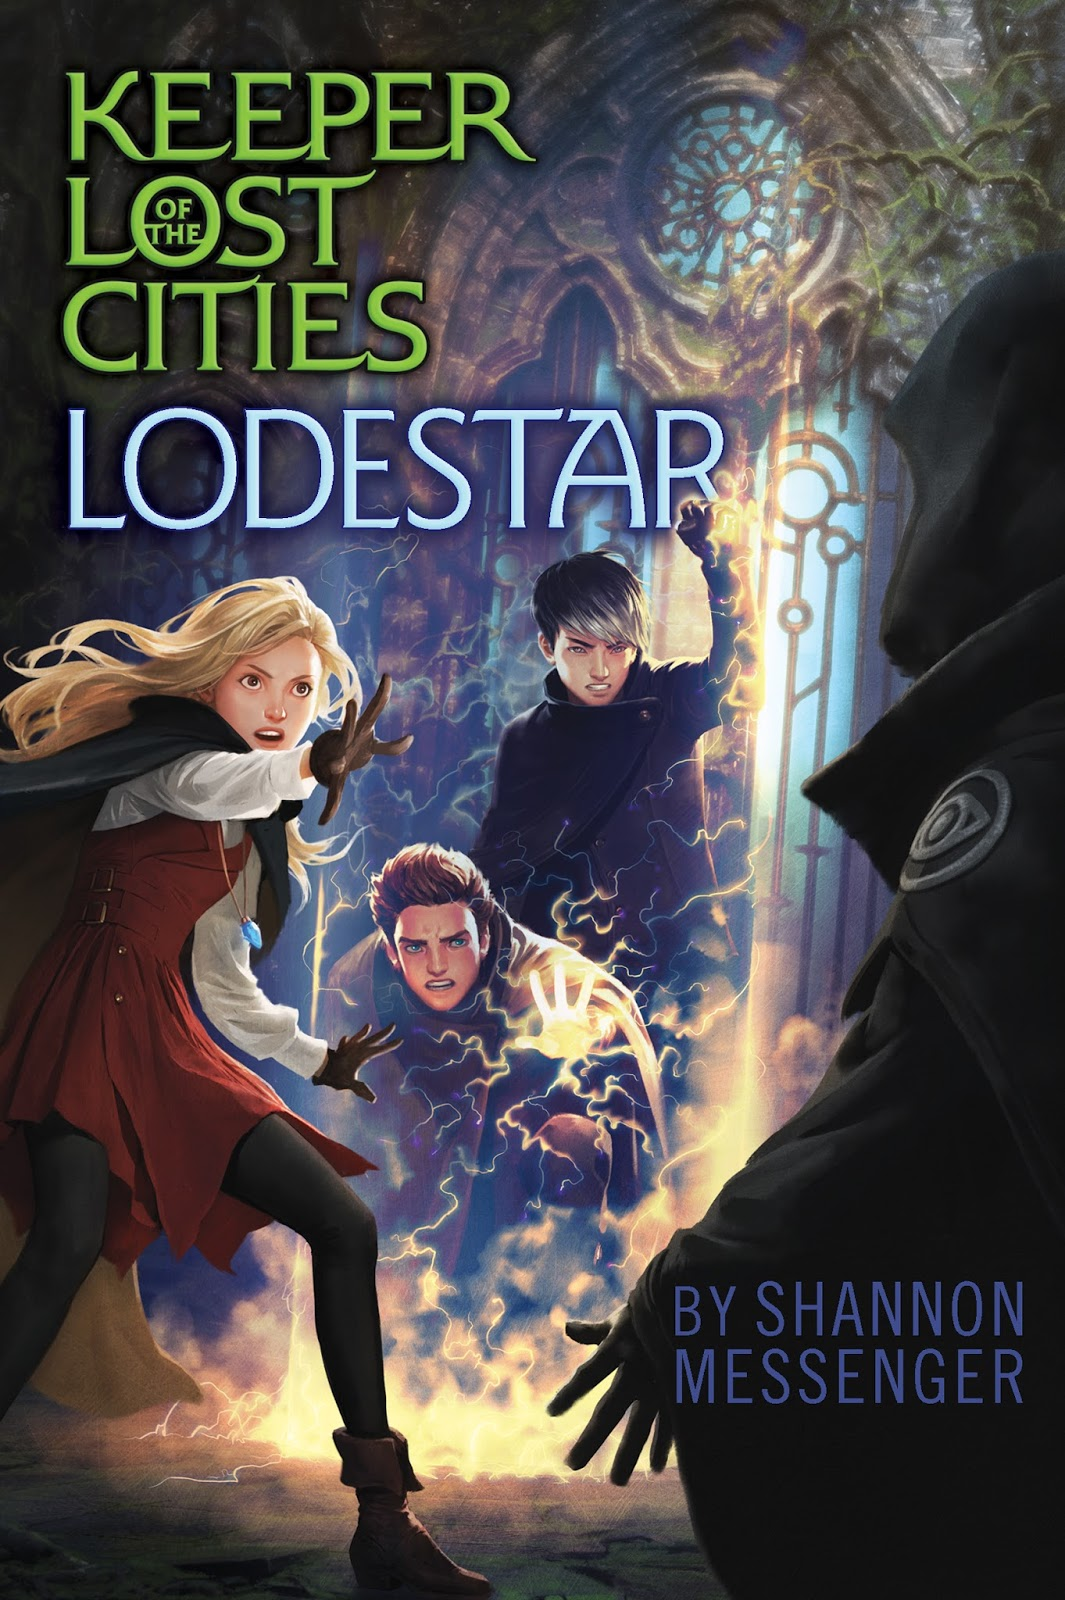 Image result for keeper of the lost cities lodestar